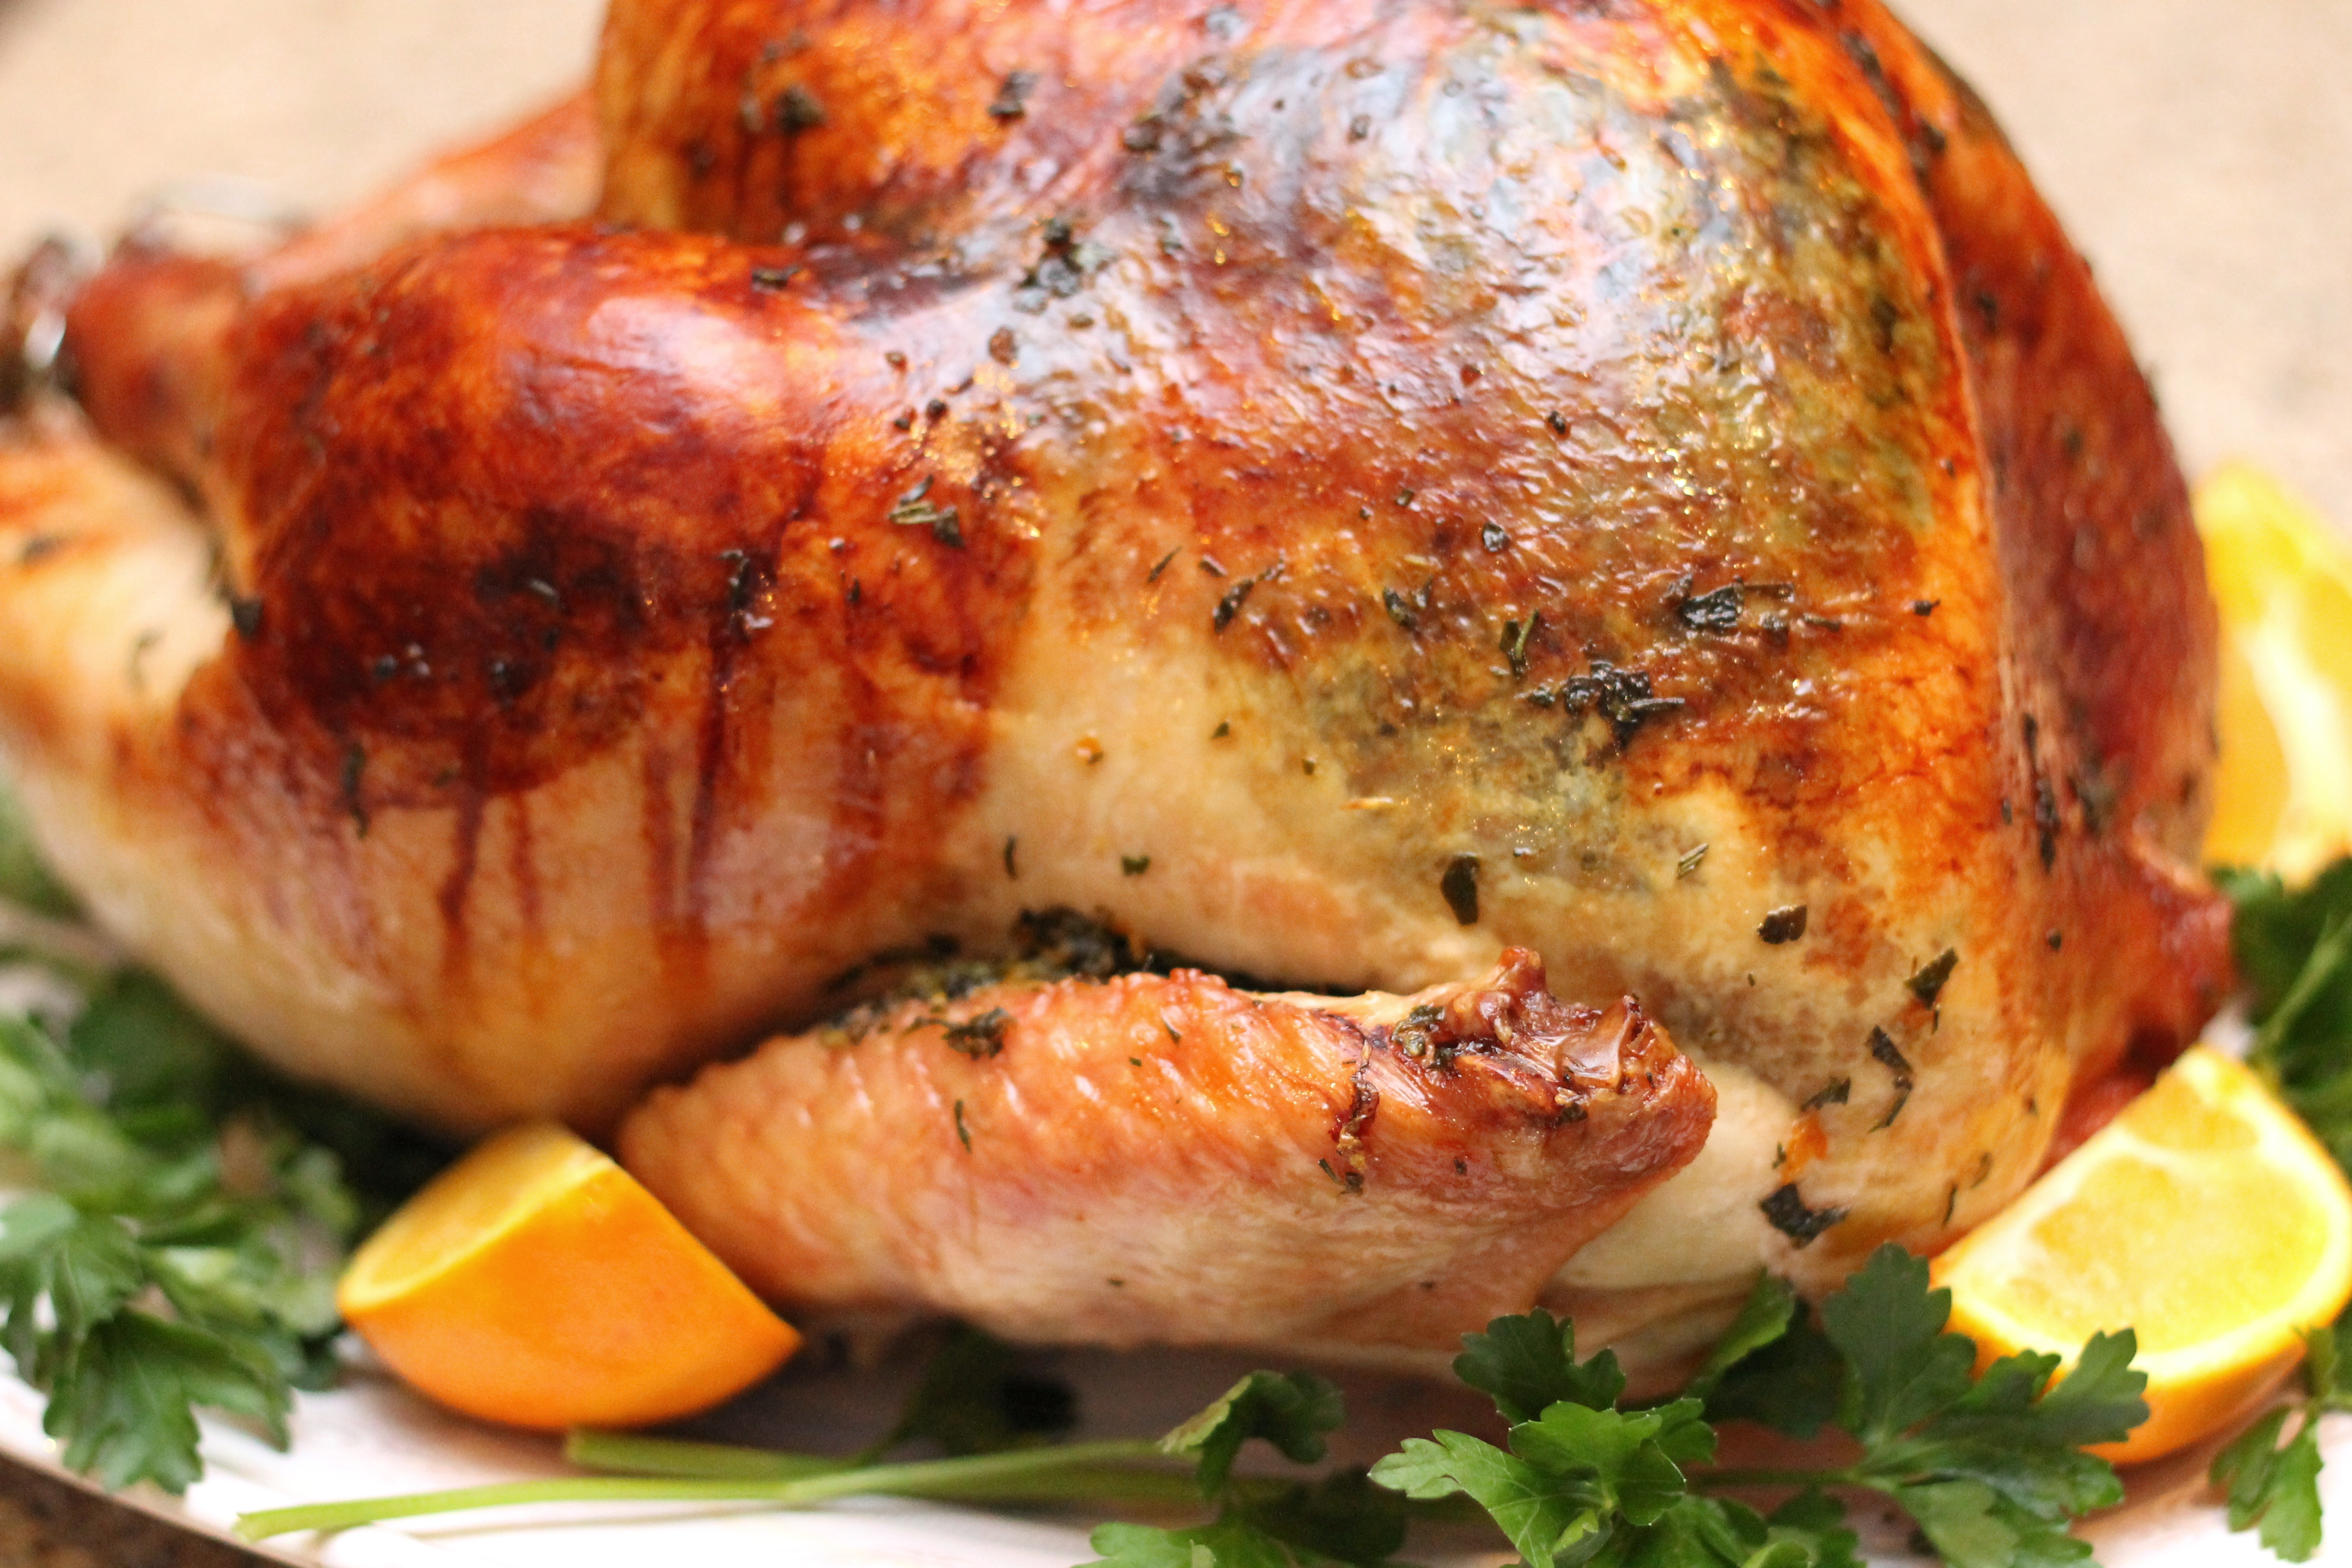 Herb Roasted Turkey and Other Thanksgiving Recipes